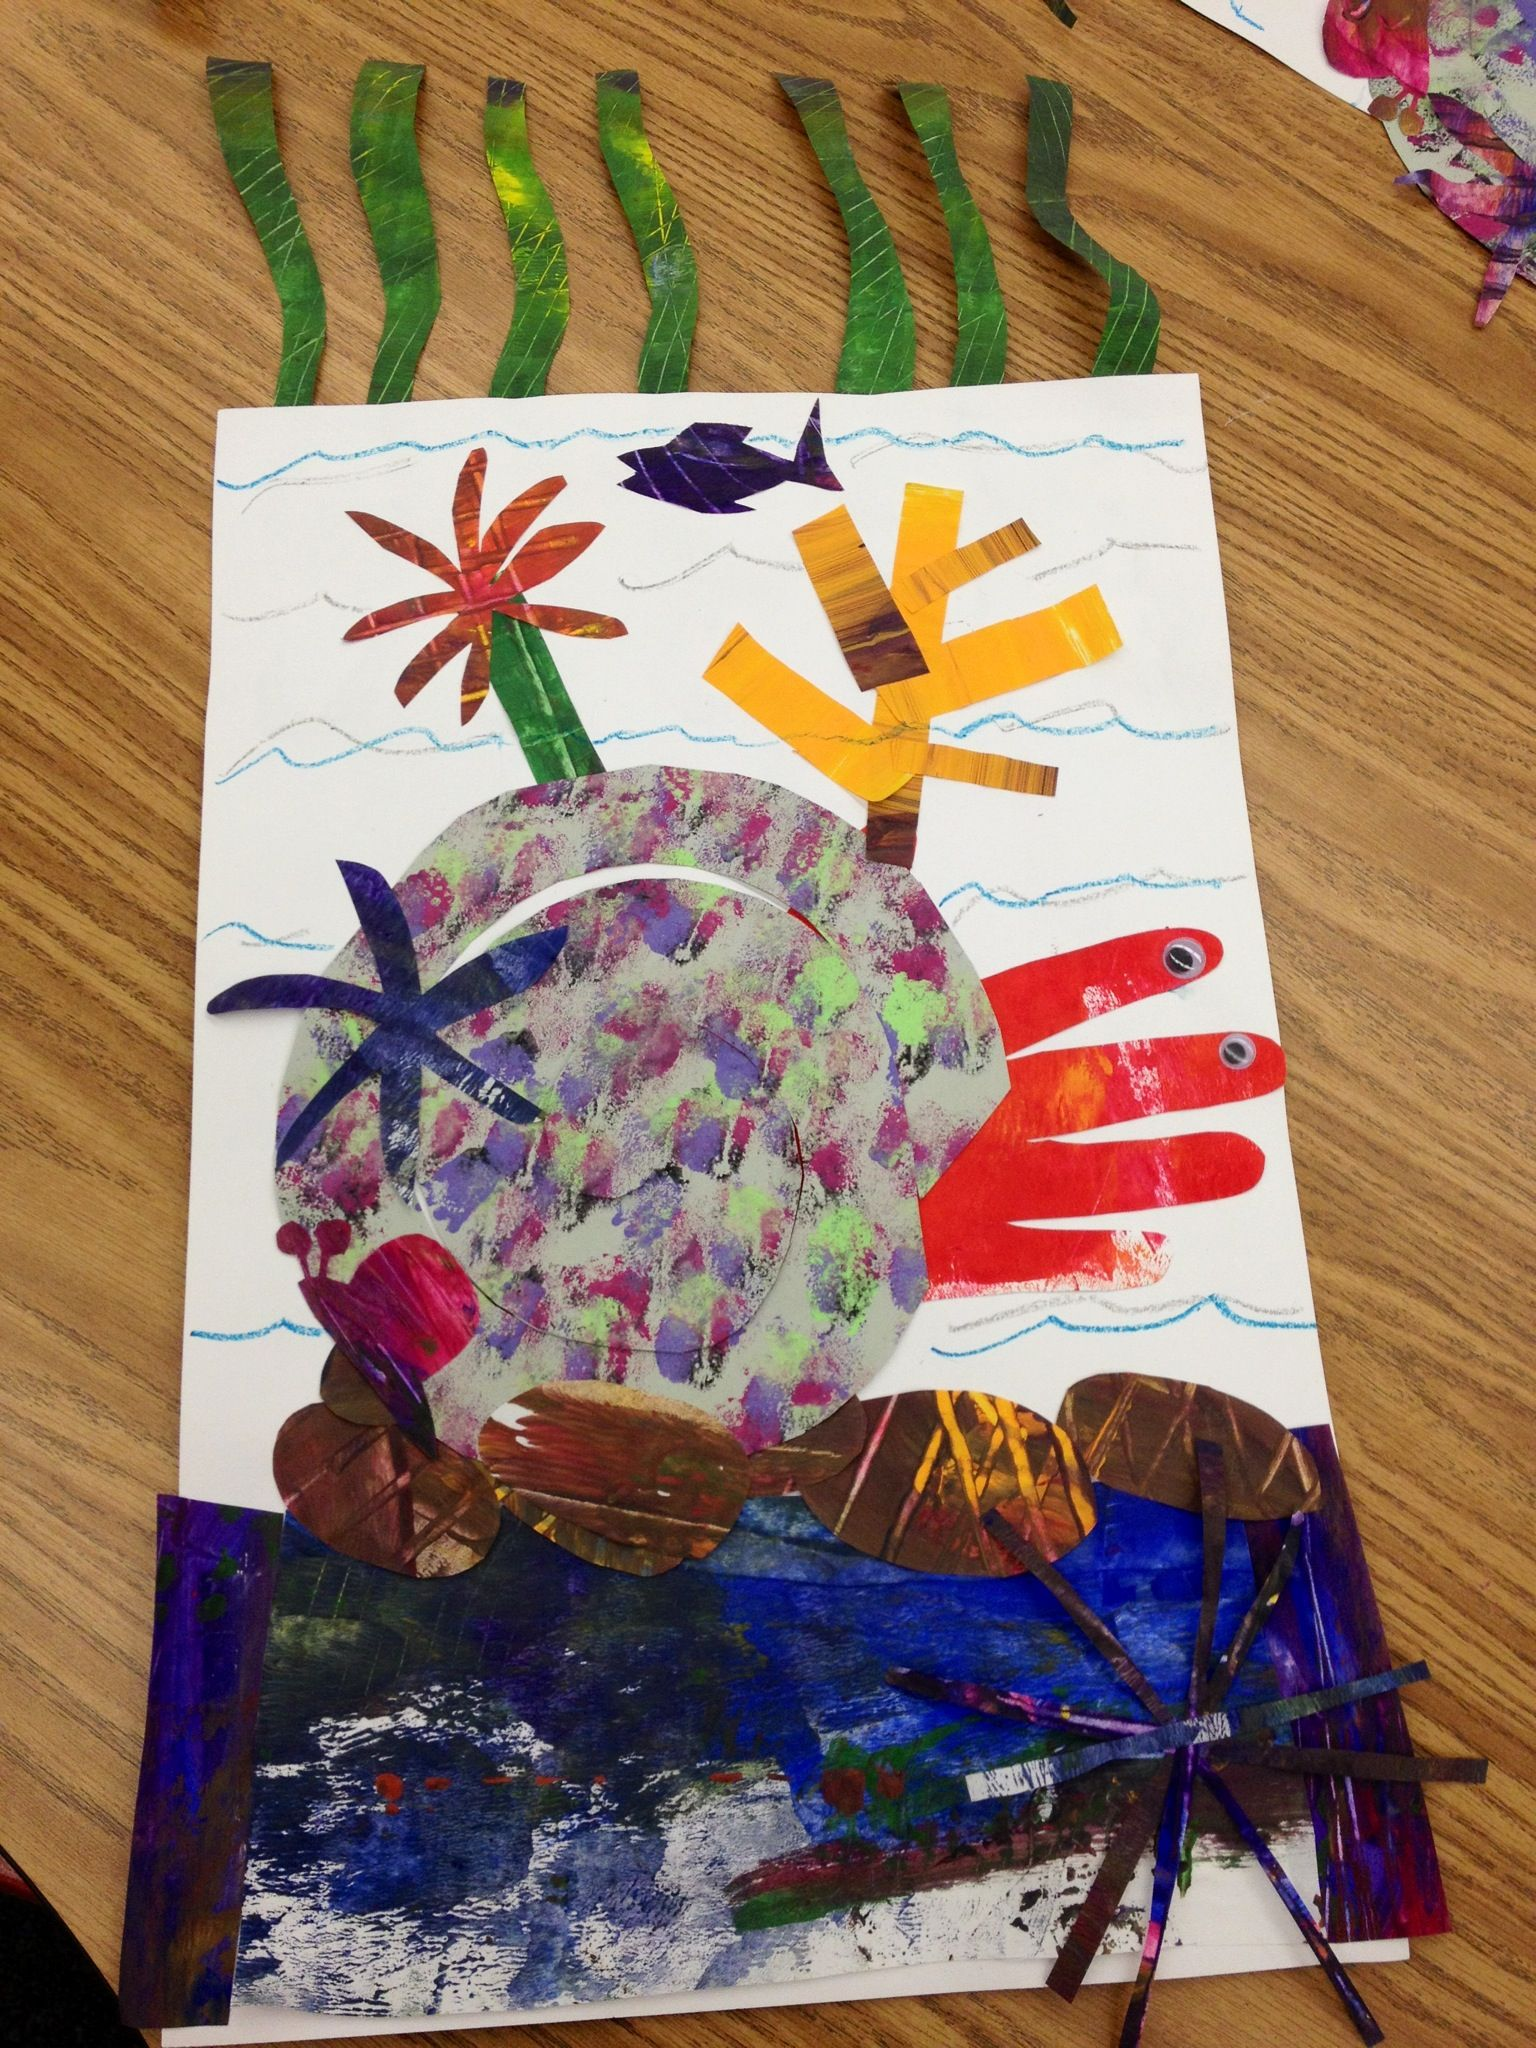 A House For Hermit Crab Eric Carle Style Paint Large Sheets Of